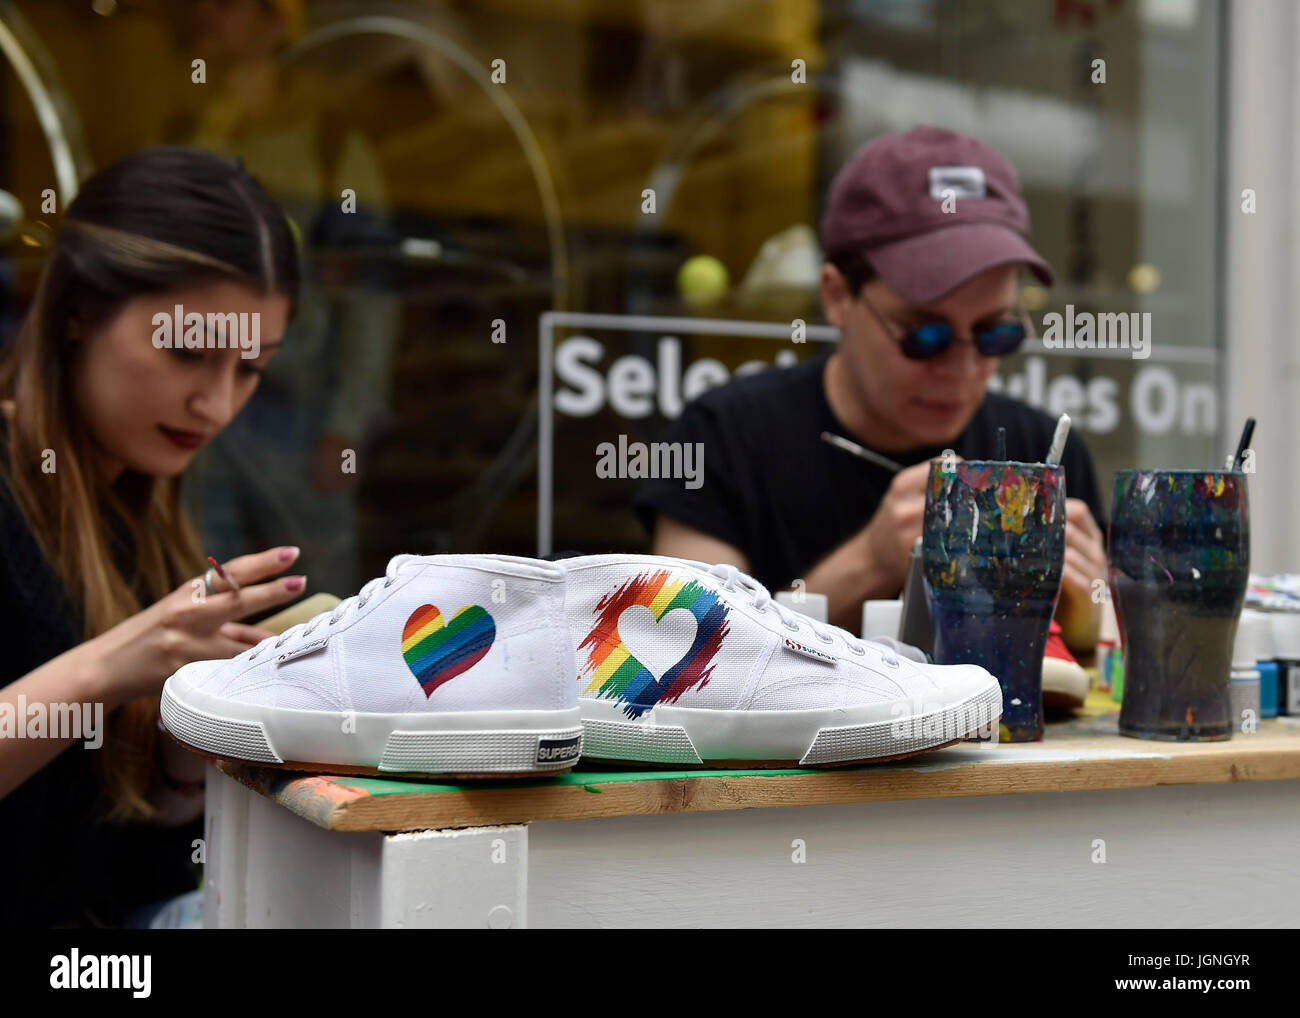 London, UK. 08th July, 2017. The artists draw the Rain Bow on the shoes during Pride In London on Saturday. Photo Stock Photo